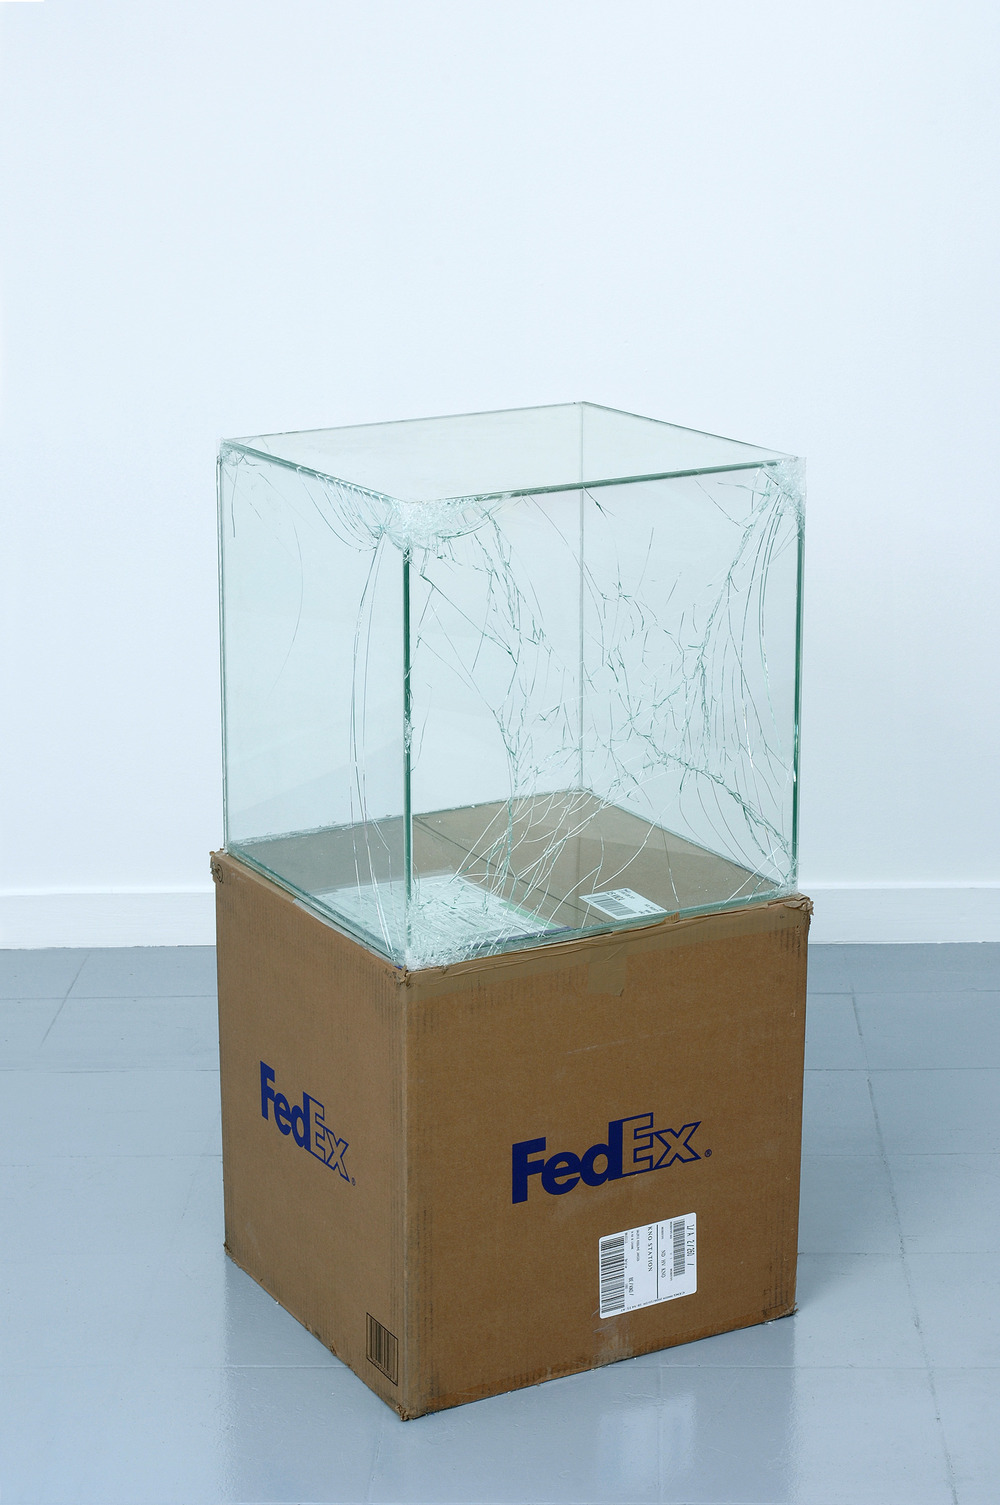 FedEx® Large Kraft Box  © 2005 FEDEX 330508 REV 10/05 SSCC, International Priority, Los Angeles–Brussels trk#865282057964, October 27–30, 2008, International Priority, Brussels–Los Angeles trk#866071746385, Janurary 8–9, 2009, Standard Overnight, Los Angeles–New York trk#872632033108, April 29–30, 2010, Standard Overnight, New York–Los Angeles trk#796210730703, September 2–3, 2010, Priority Overnight, Los Angeles–New York trk#794583197877, March 28–29, 2011, Priority Overnight, New York–Los Angeles trk#611849858596, January 13–14, 2015    2008–   Laminated glass, FedEx shipping box, accrued FedEx shipping and tracking labels, silicone, metal, and tape  20 x 20 x 20 inches   Industrial Pictures, 2008